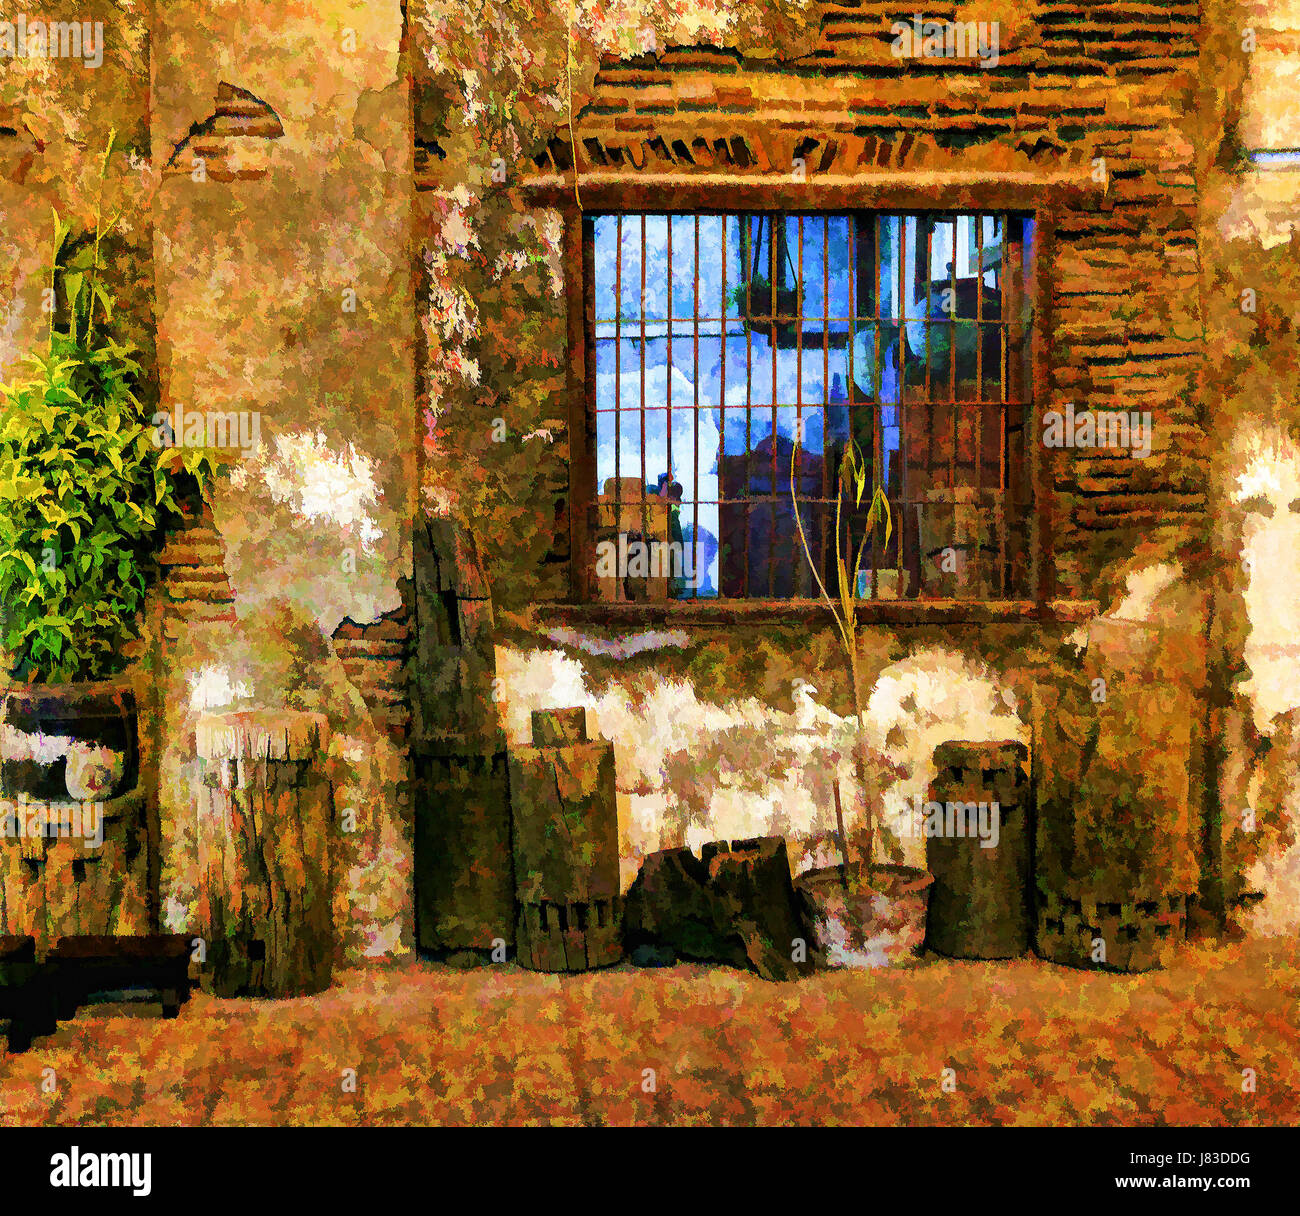 Photo illustration of an old Spanish building at Vigan City, Northern Luzon Island, Philippines. - Stock Image